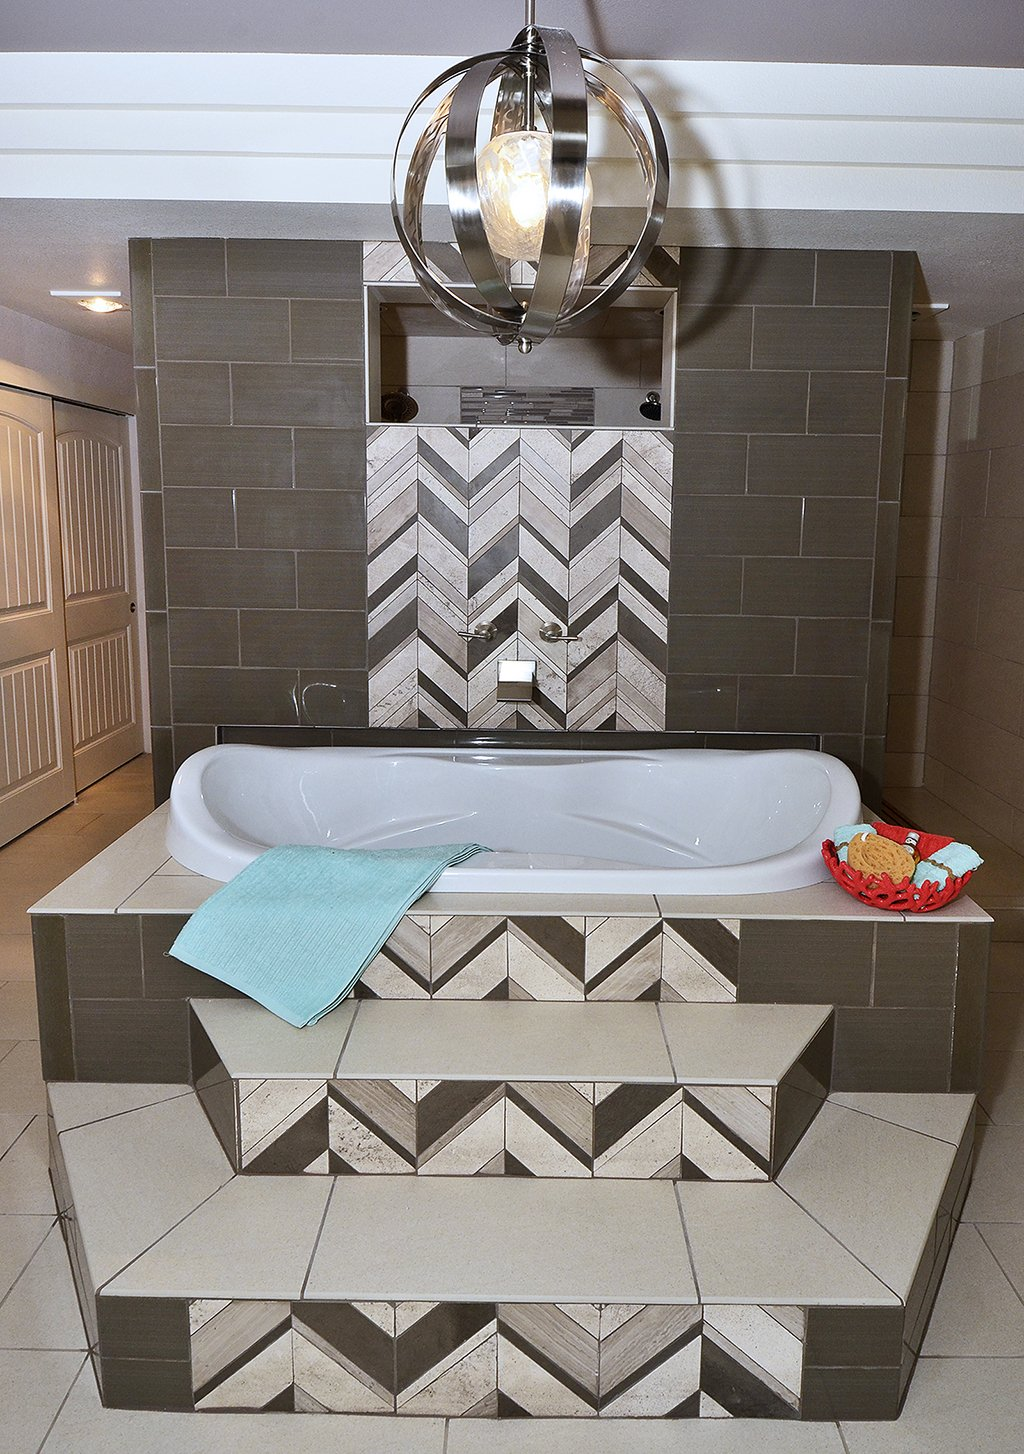 Picture of 2nd master bathroom 1602 Gold Hill Mesa Dr Colorado Springs CO